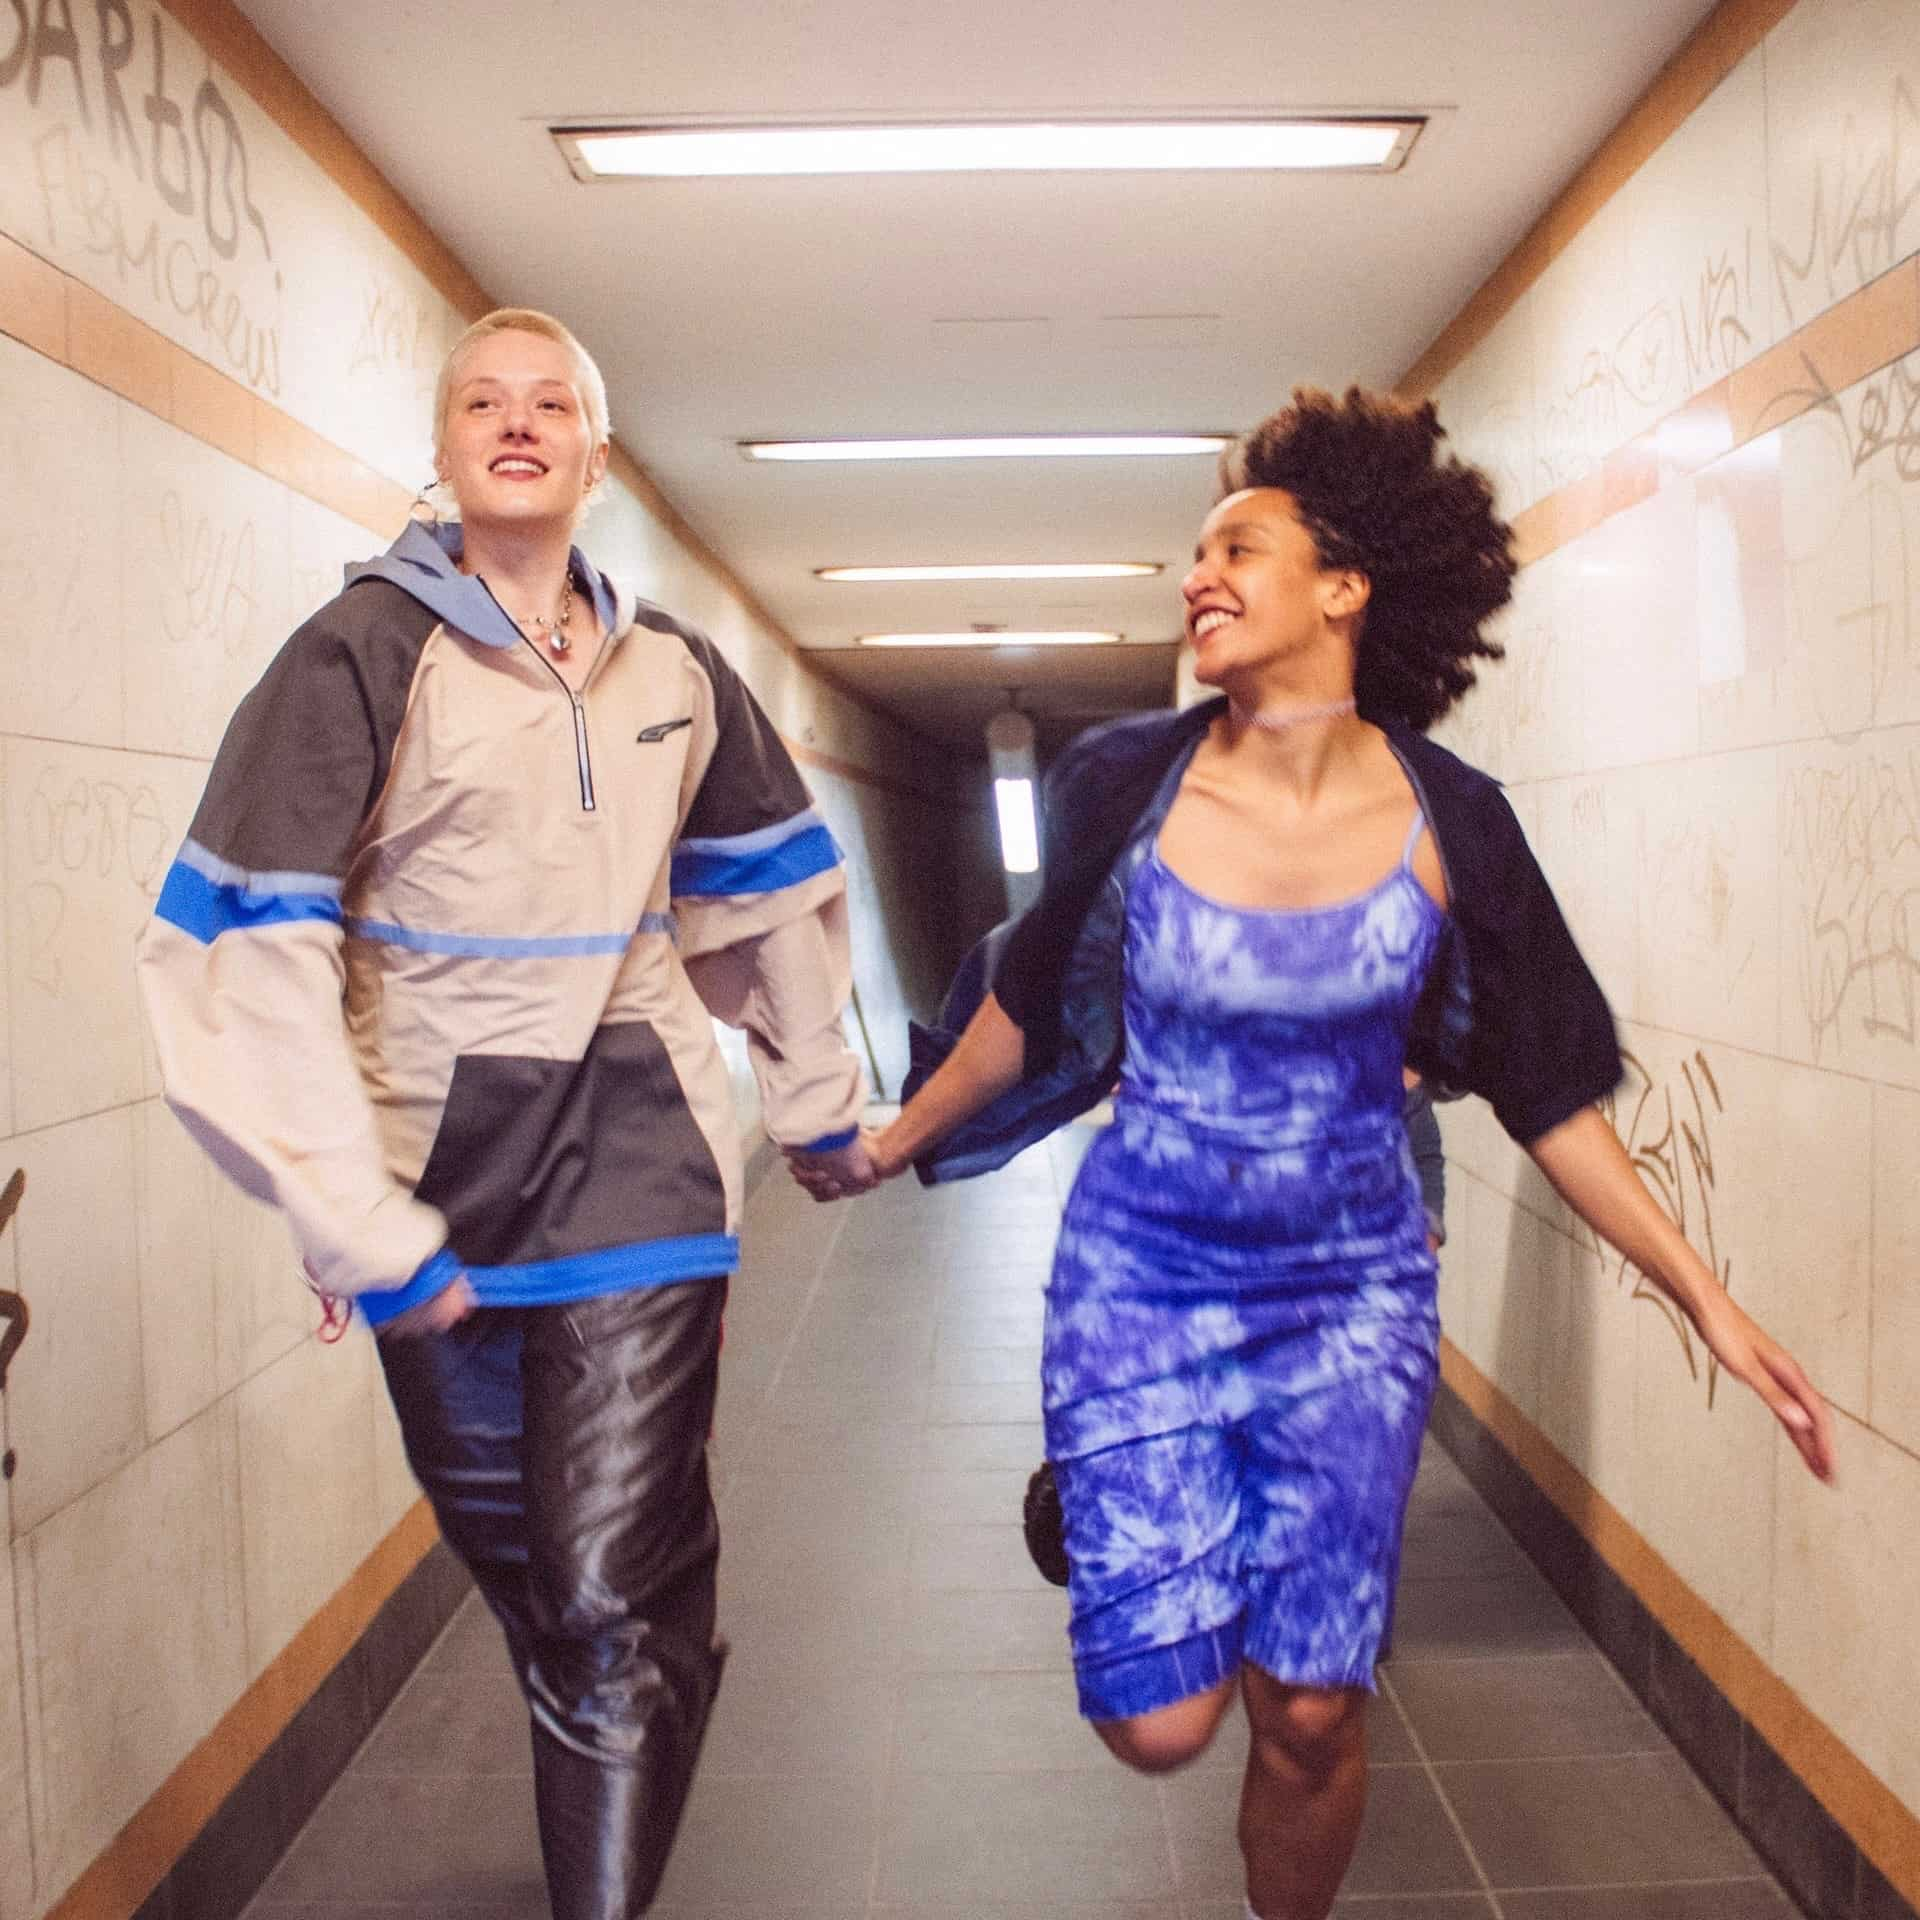 Two people hold hands and run down a hallway, grinning